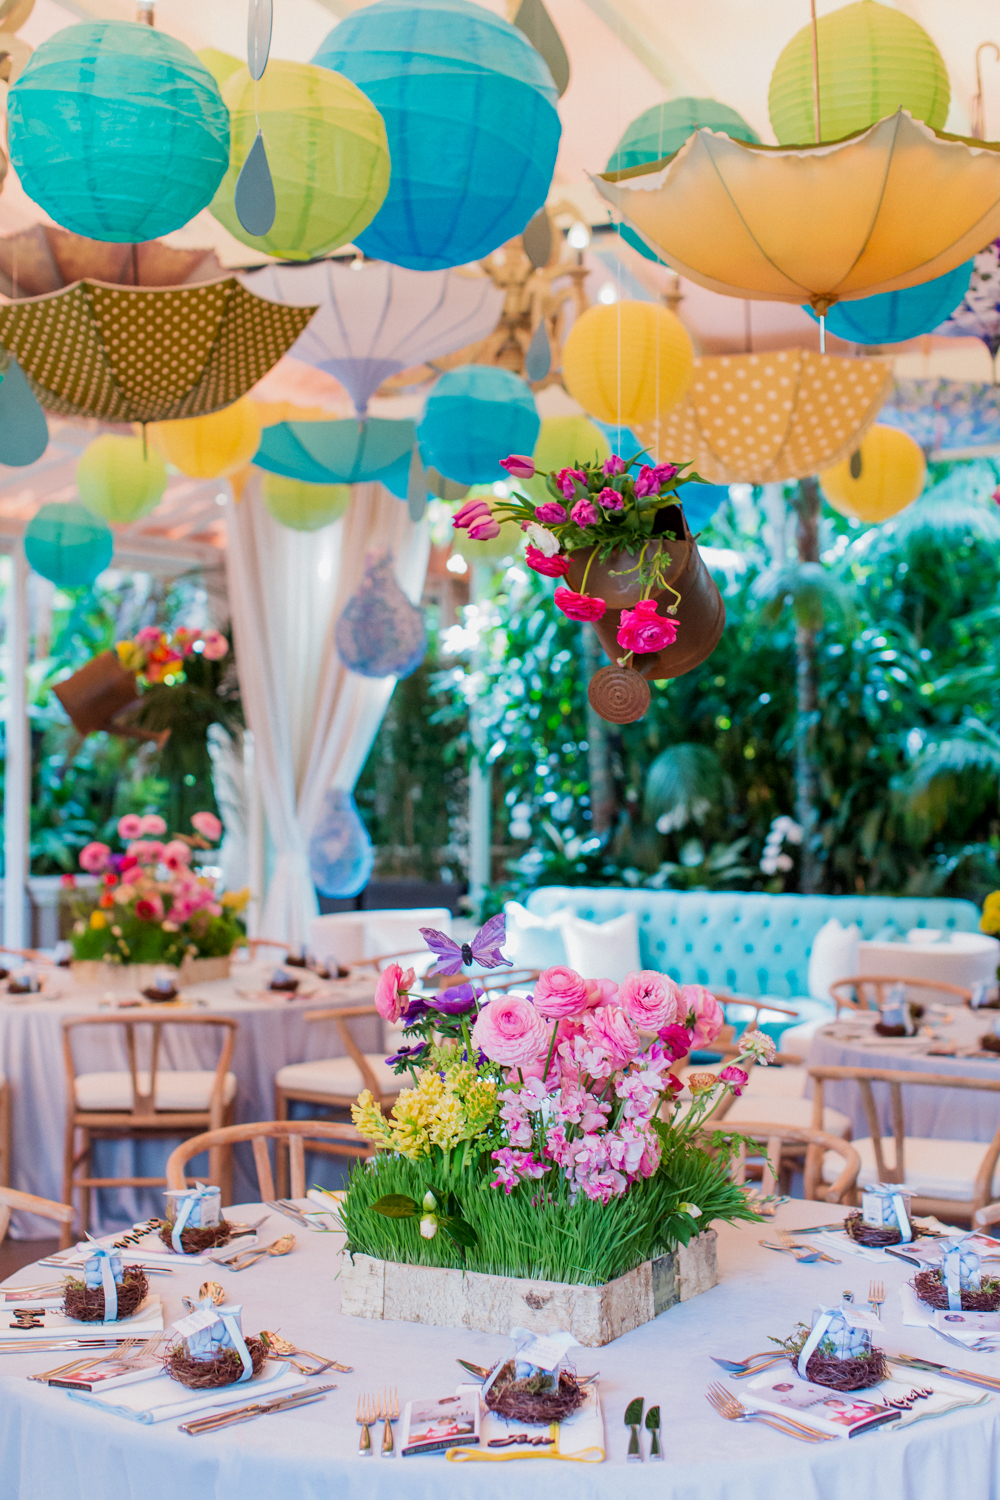 Beautiful Tented Baby Shower - Mindy Weiss Party Consultants